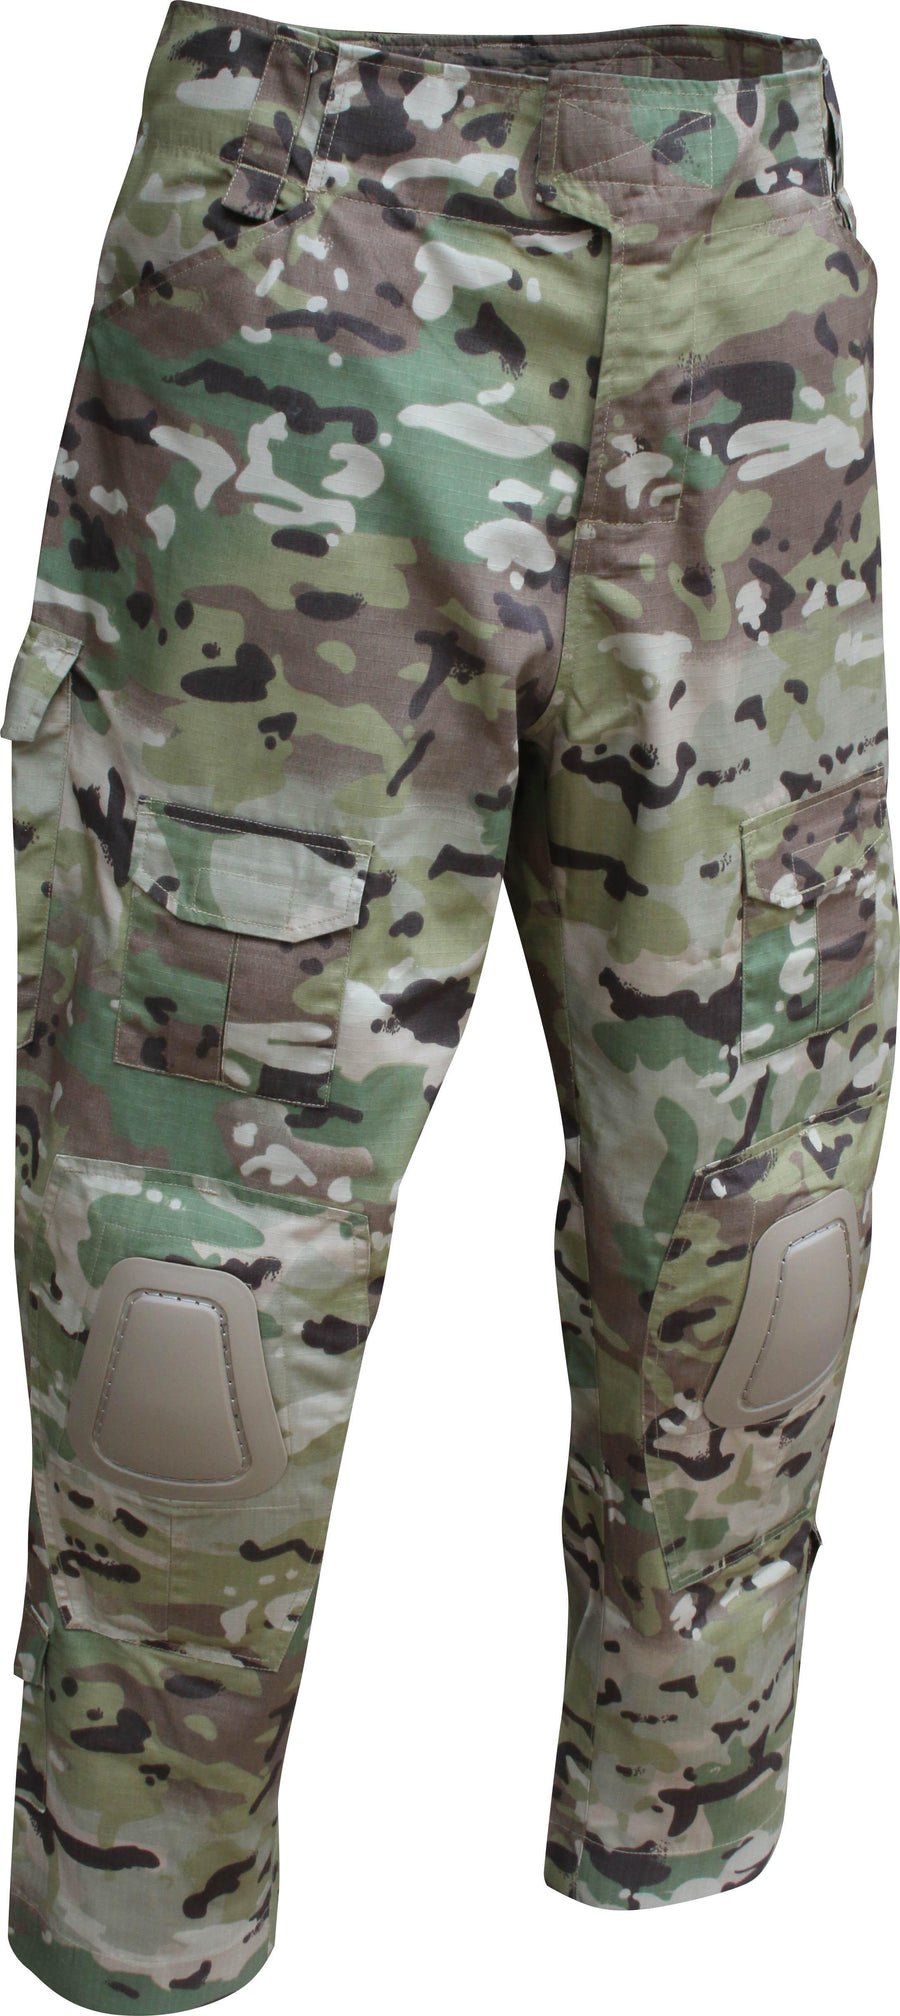 Viper Elite Trousers - VCAM